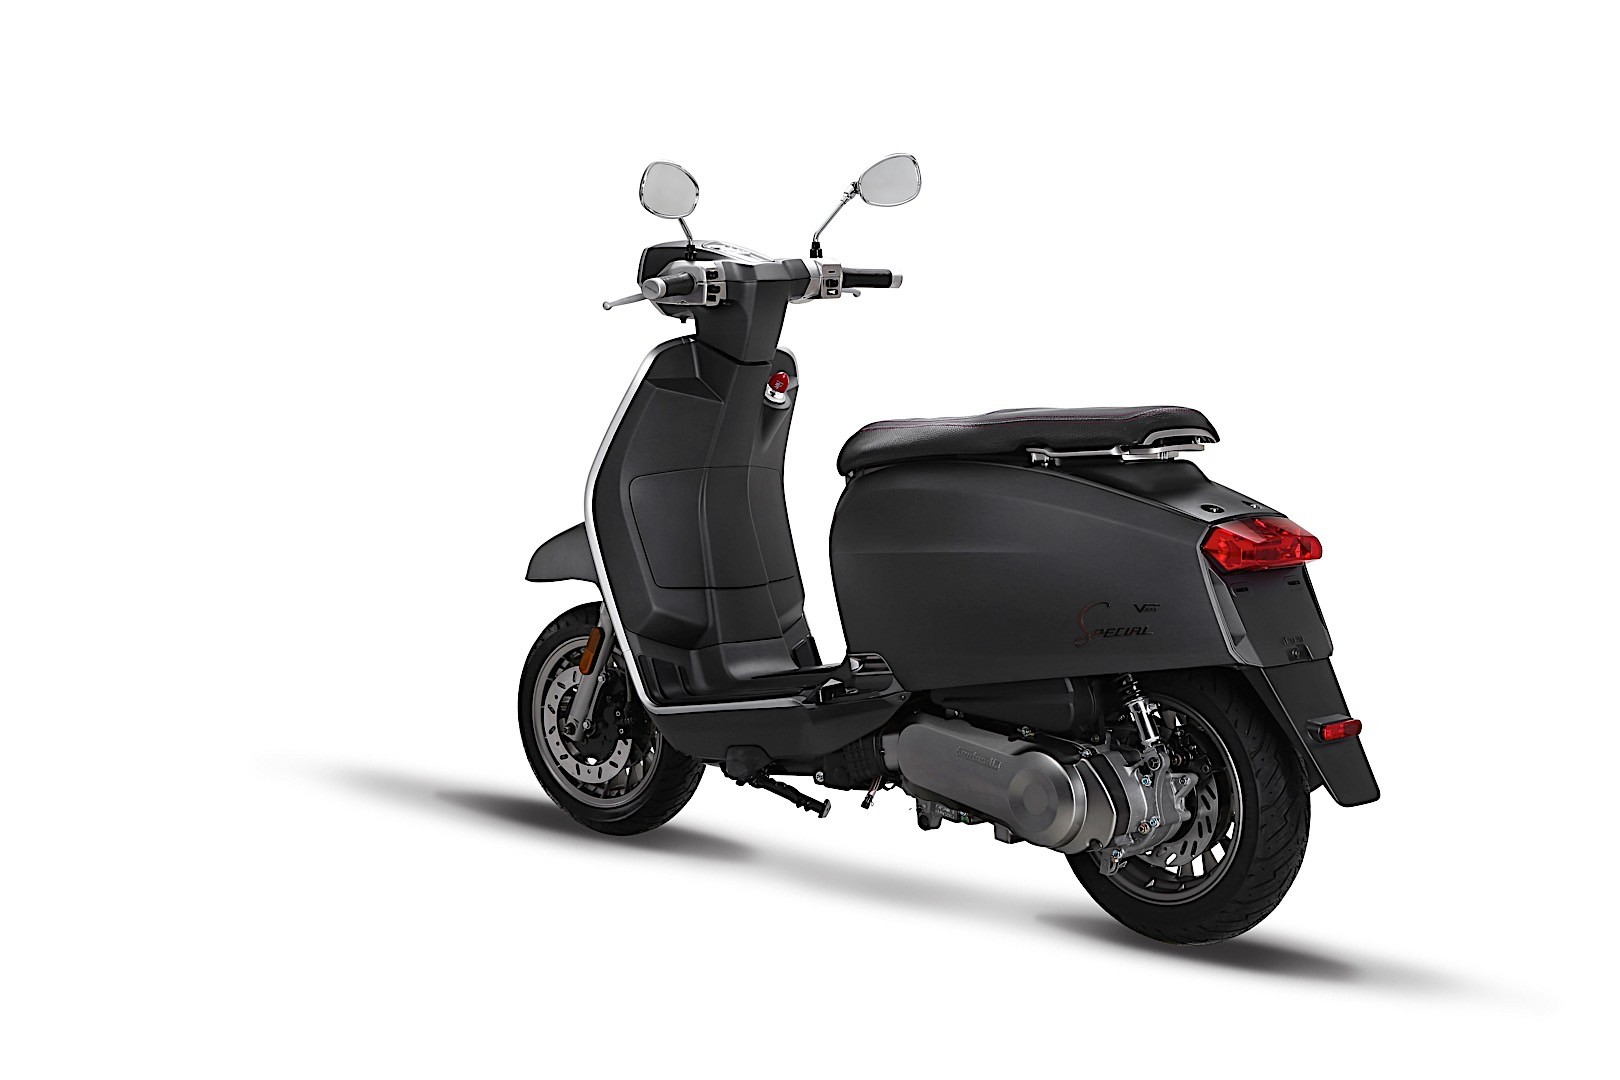 This Is Lambretta's New 2018 V-Special Scooter - autoevolution